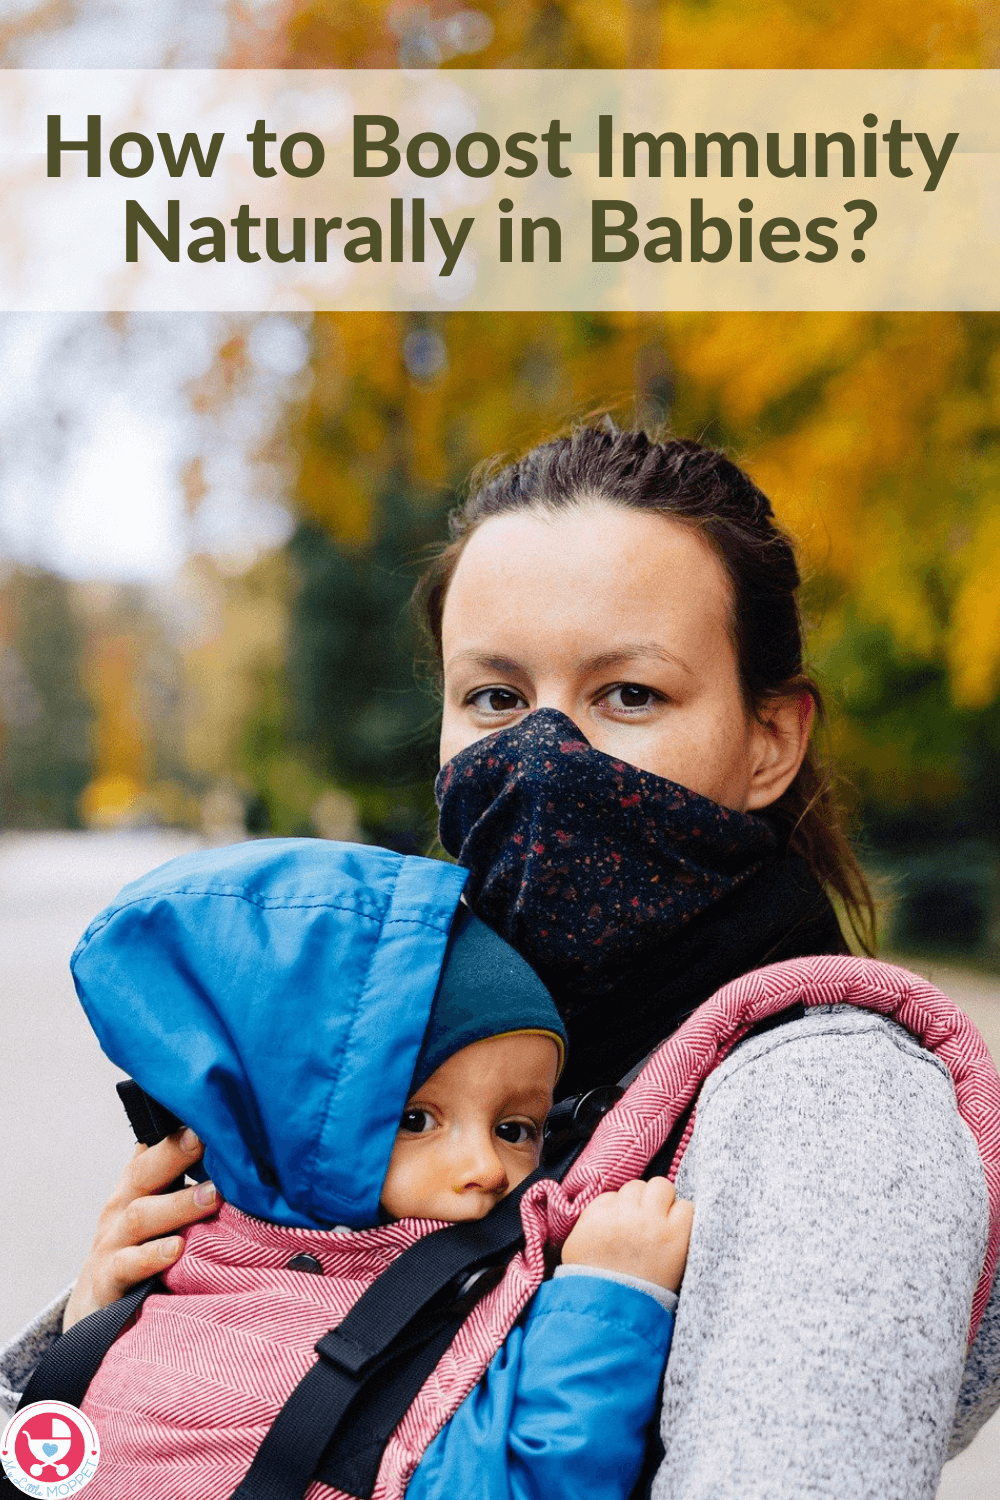 How to Boost Immunity Naturally in Babies? This is a question many parents are asking in the current scenario, so let's find out the answer!